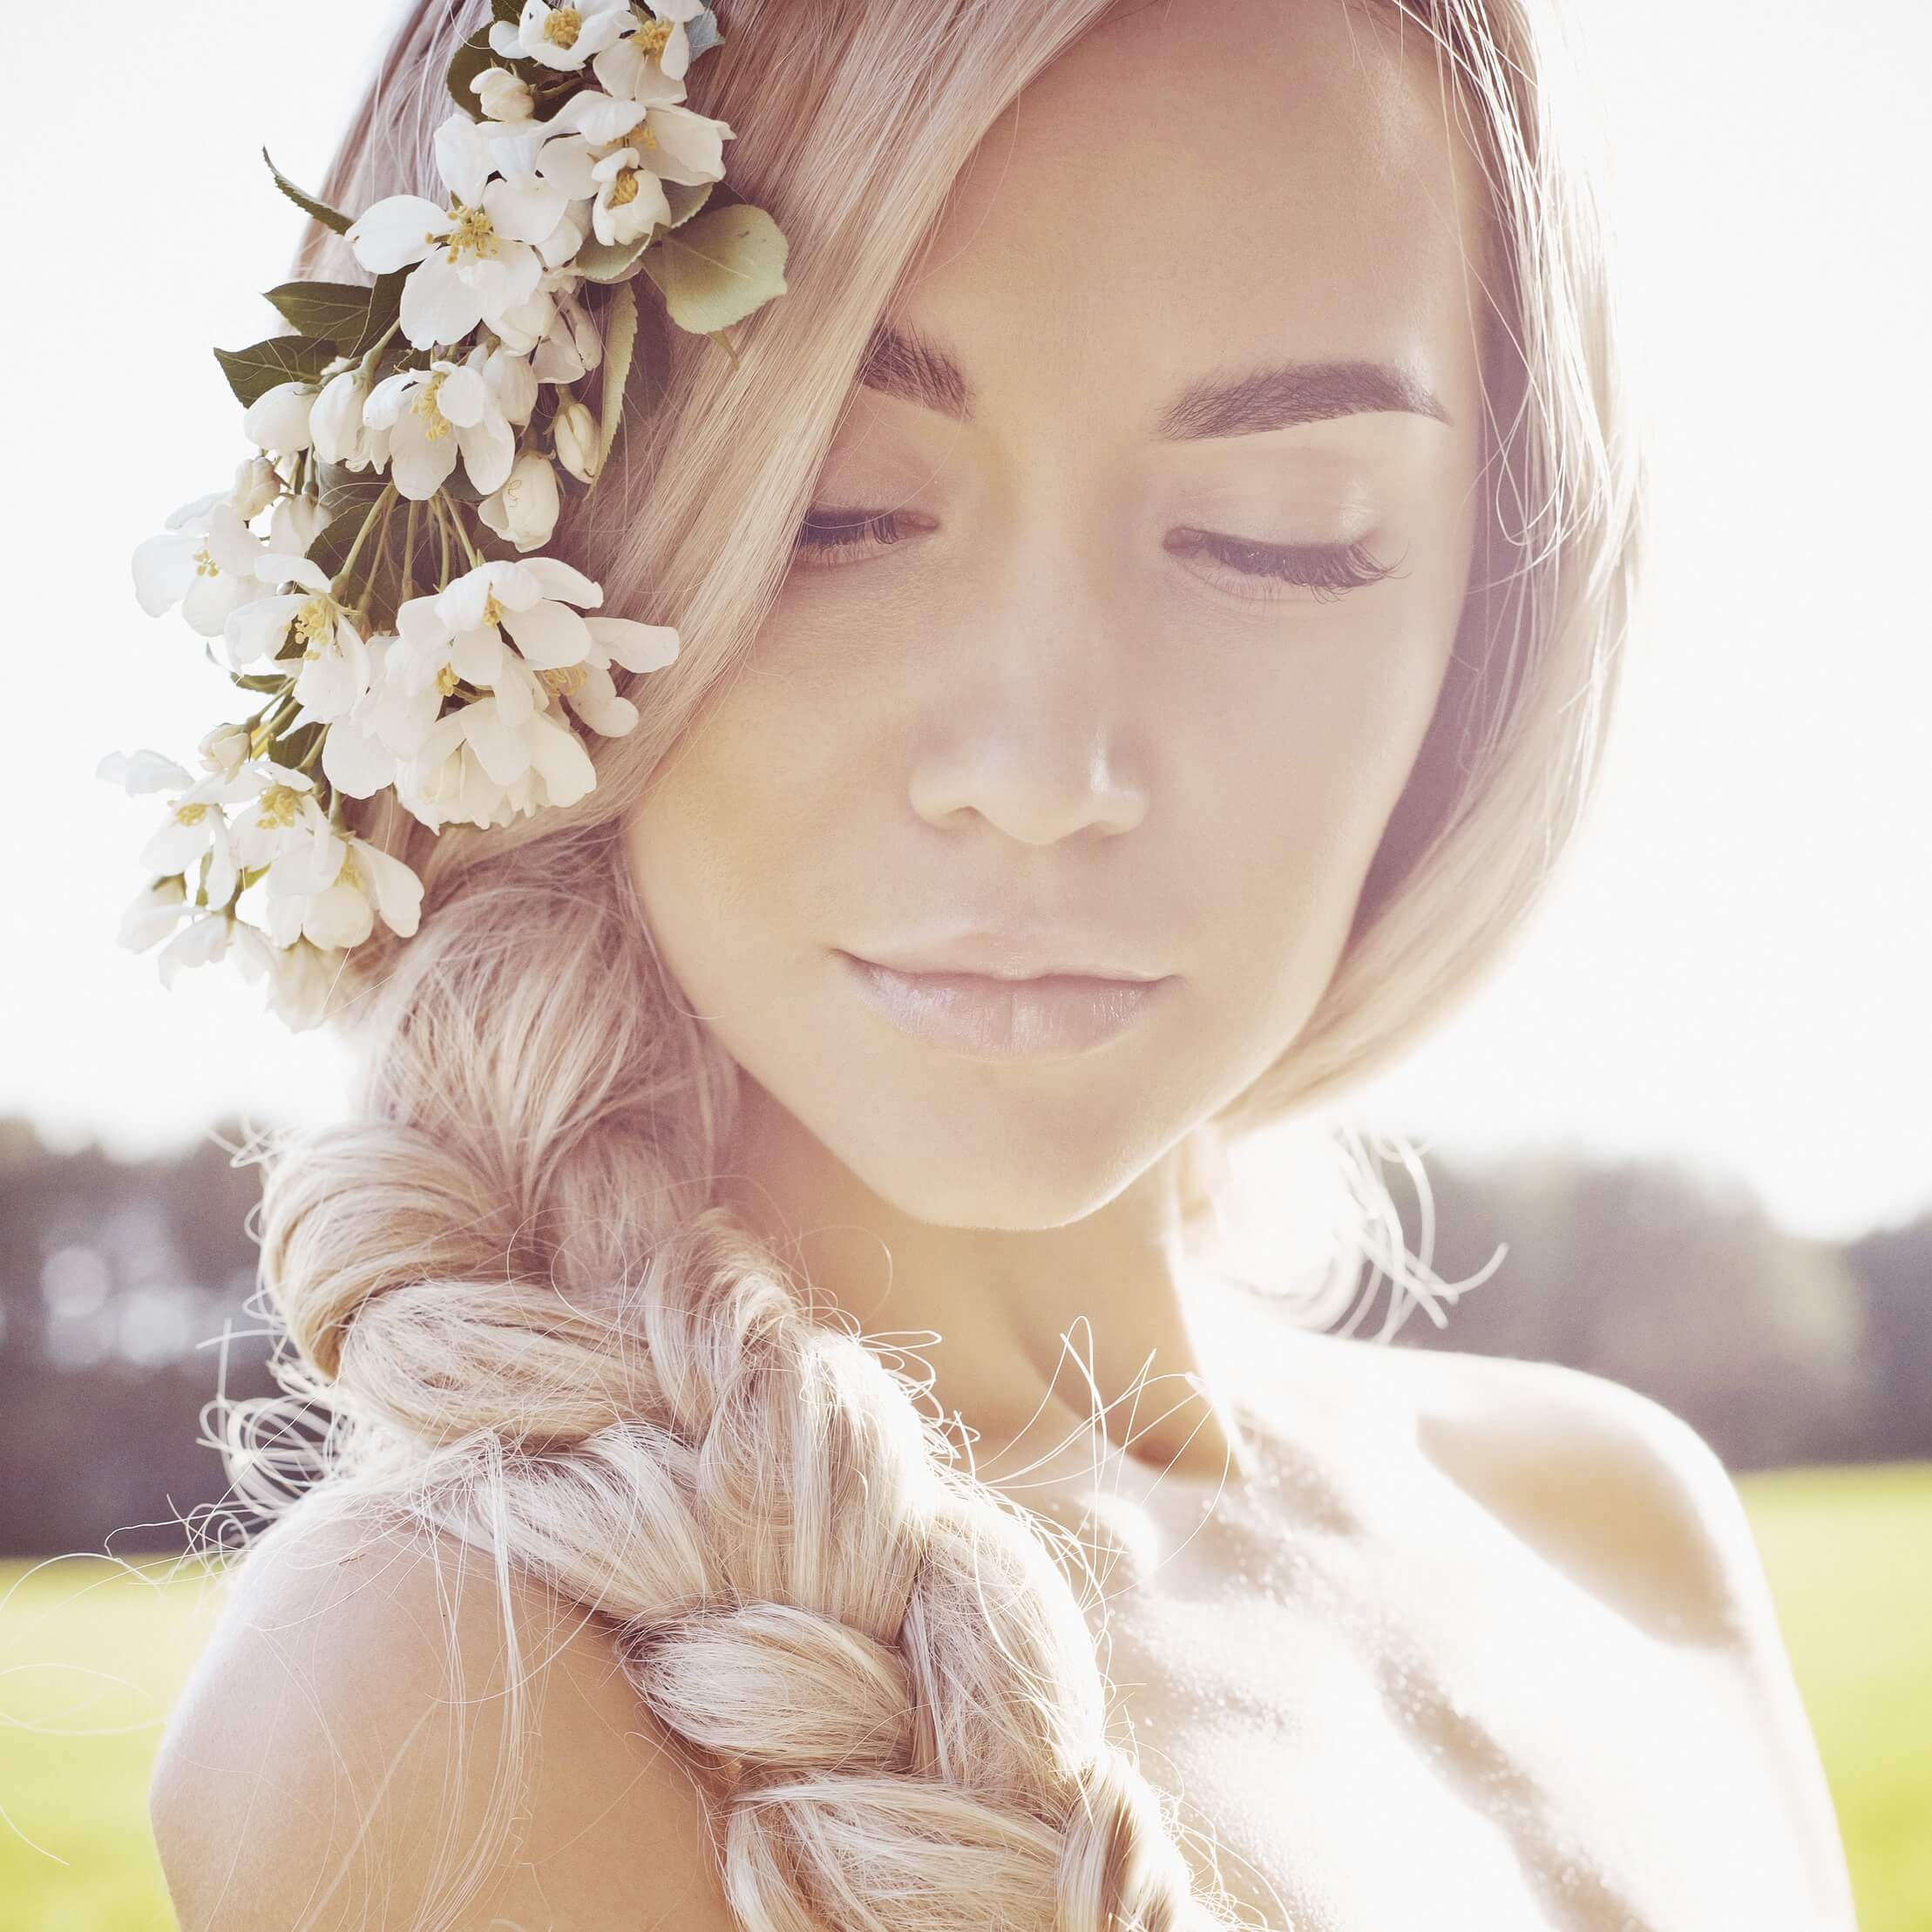 blonde model with long hair styled in a side braid with flowers placed at the top of the braid